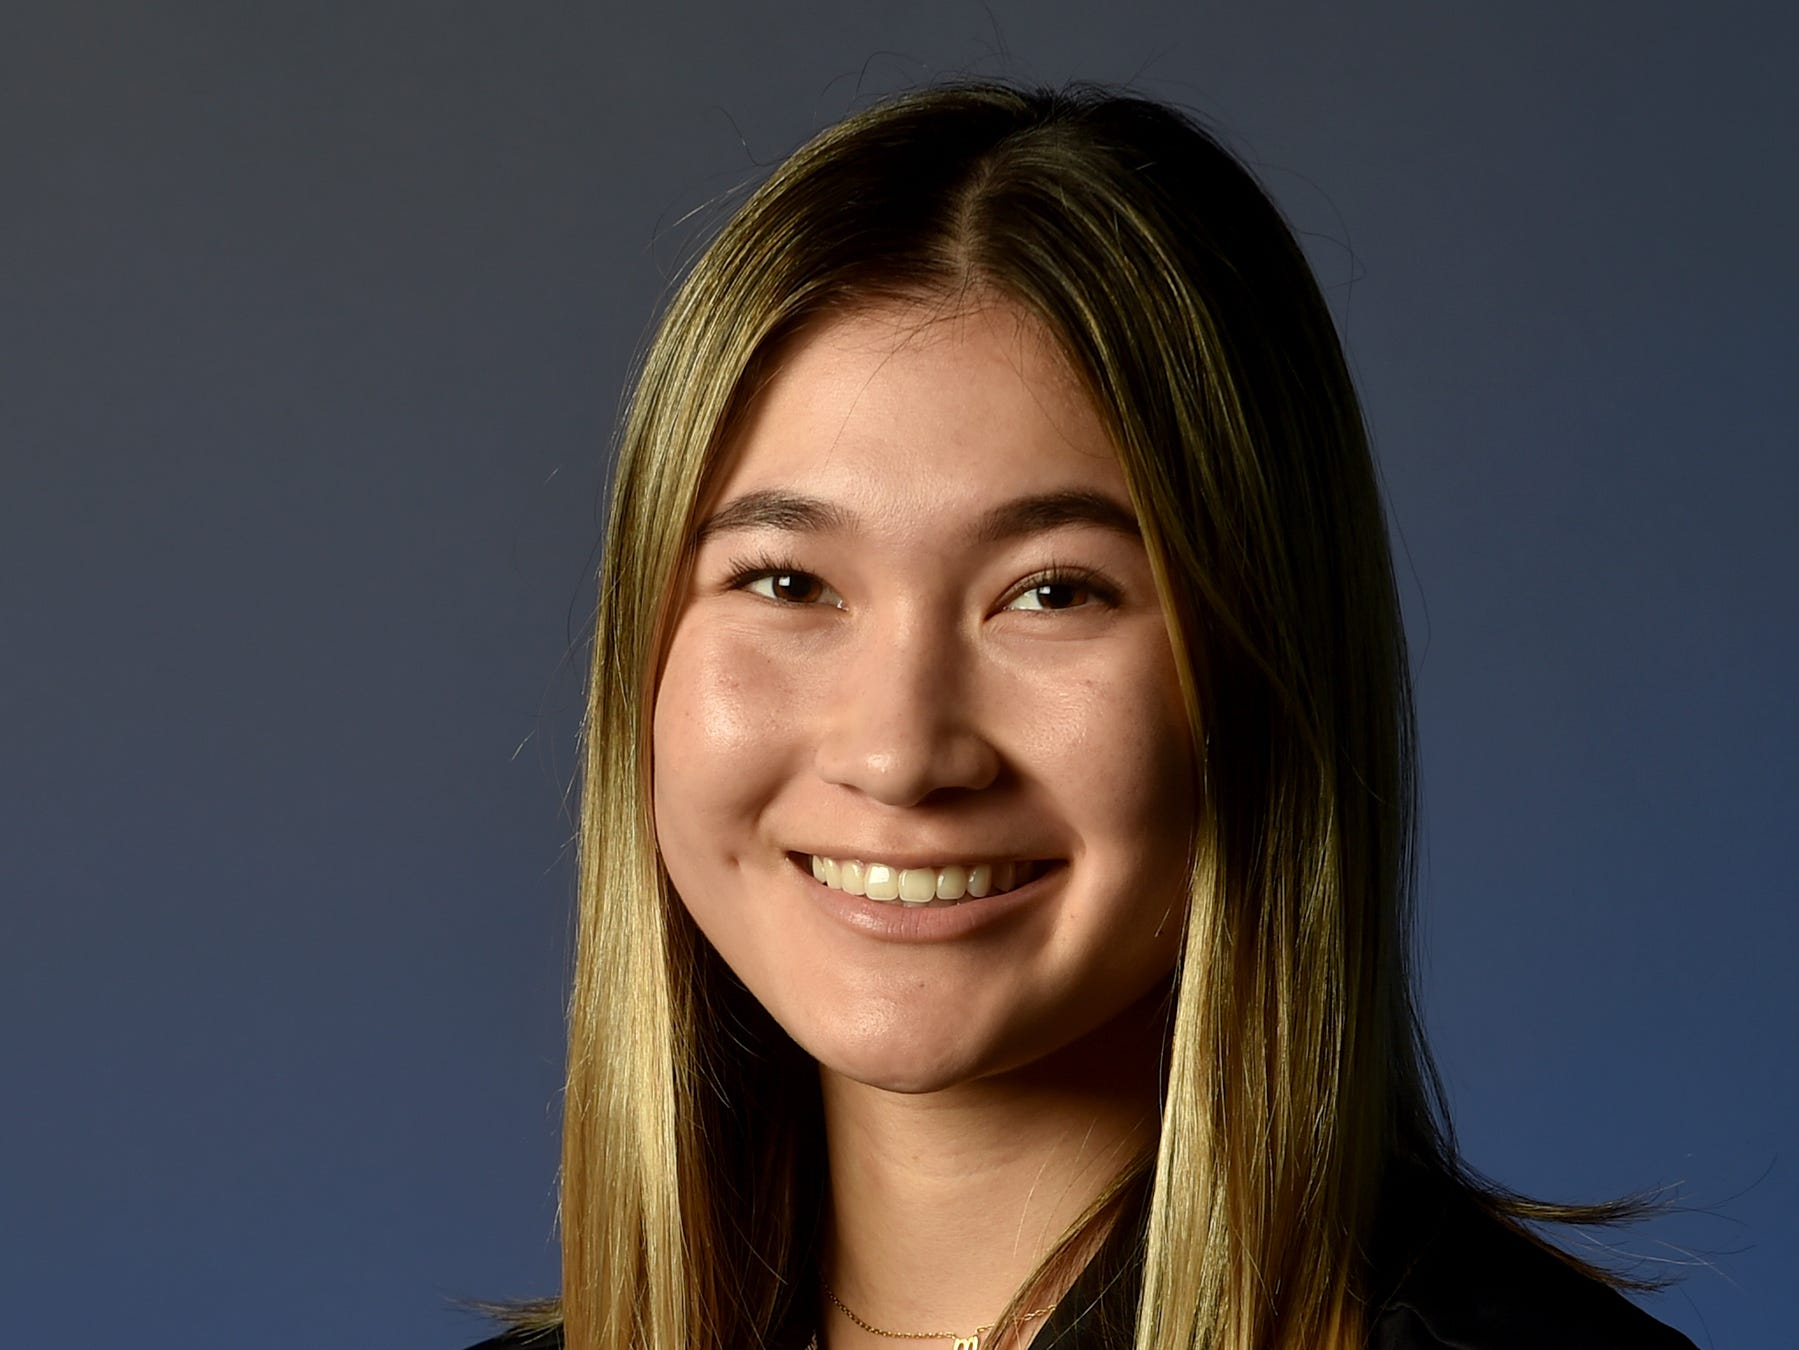 "MARISA D'AMORE, Westlake: The junior had a season scoring average of 36.5 for nine holes and 76.4 for 18. D'Amore helped Westlake finish second at the Northern Division Team Championships, shooting a 72. She was a first-team selection in the Marmonte League. D'Amore enjoys graphic design and Lego building. Her favorite movie is ""Bohemian Rhapsody,"" her favorite TV show is ""The Office,"" and her favorite singer is Drake. She enjoys eating sushi and is a fan of Tiger Woods."